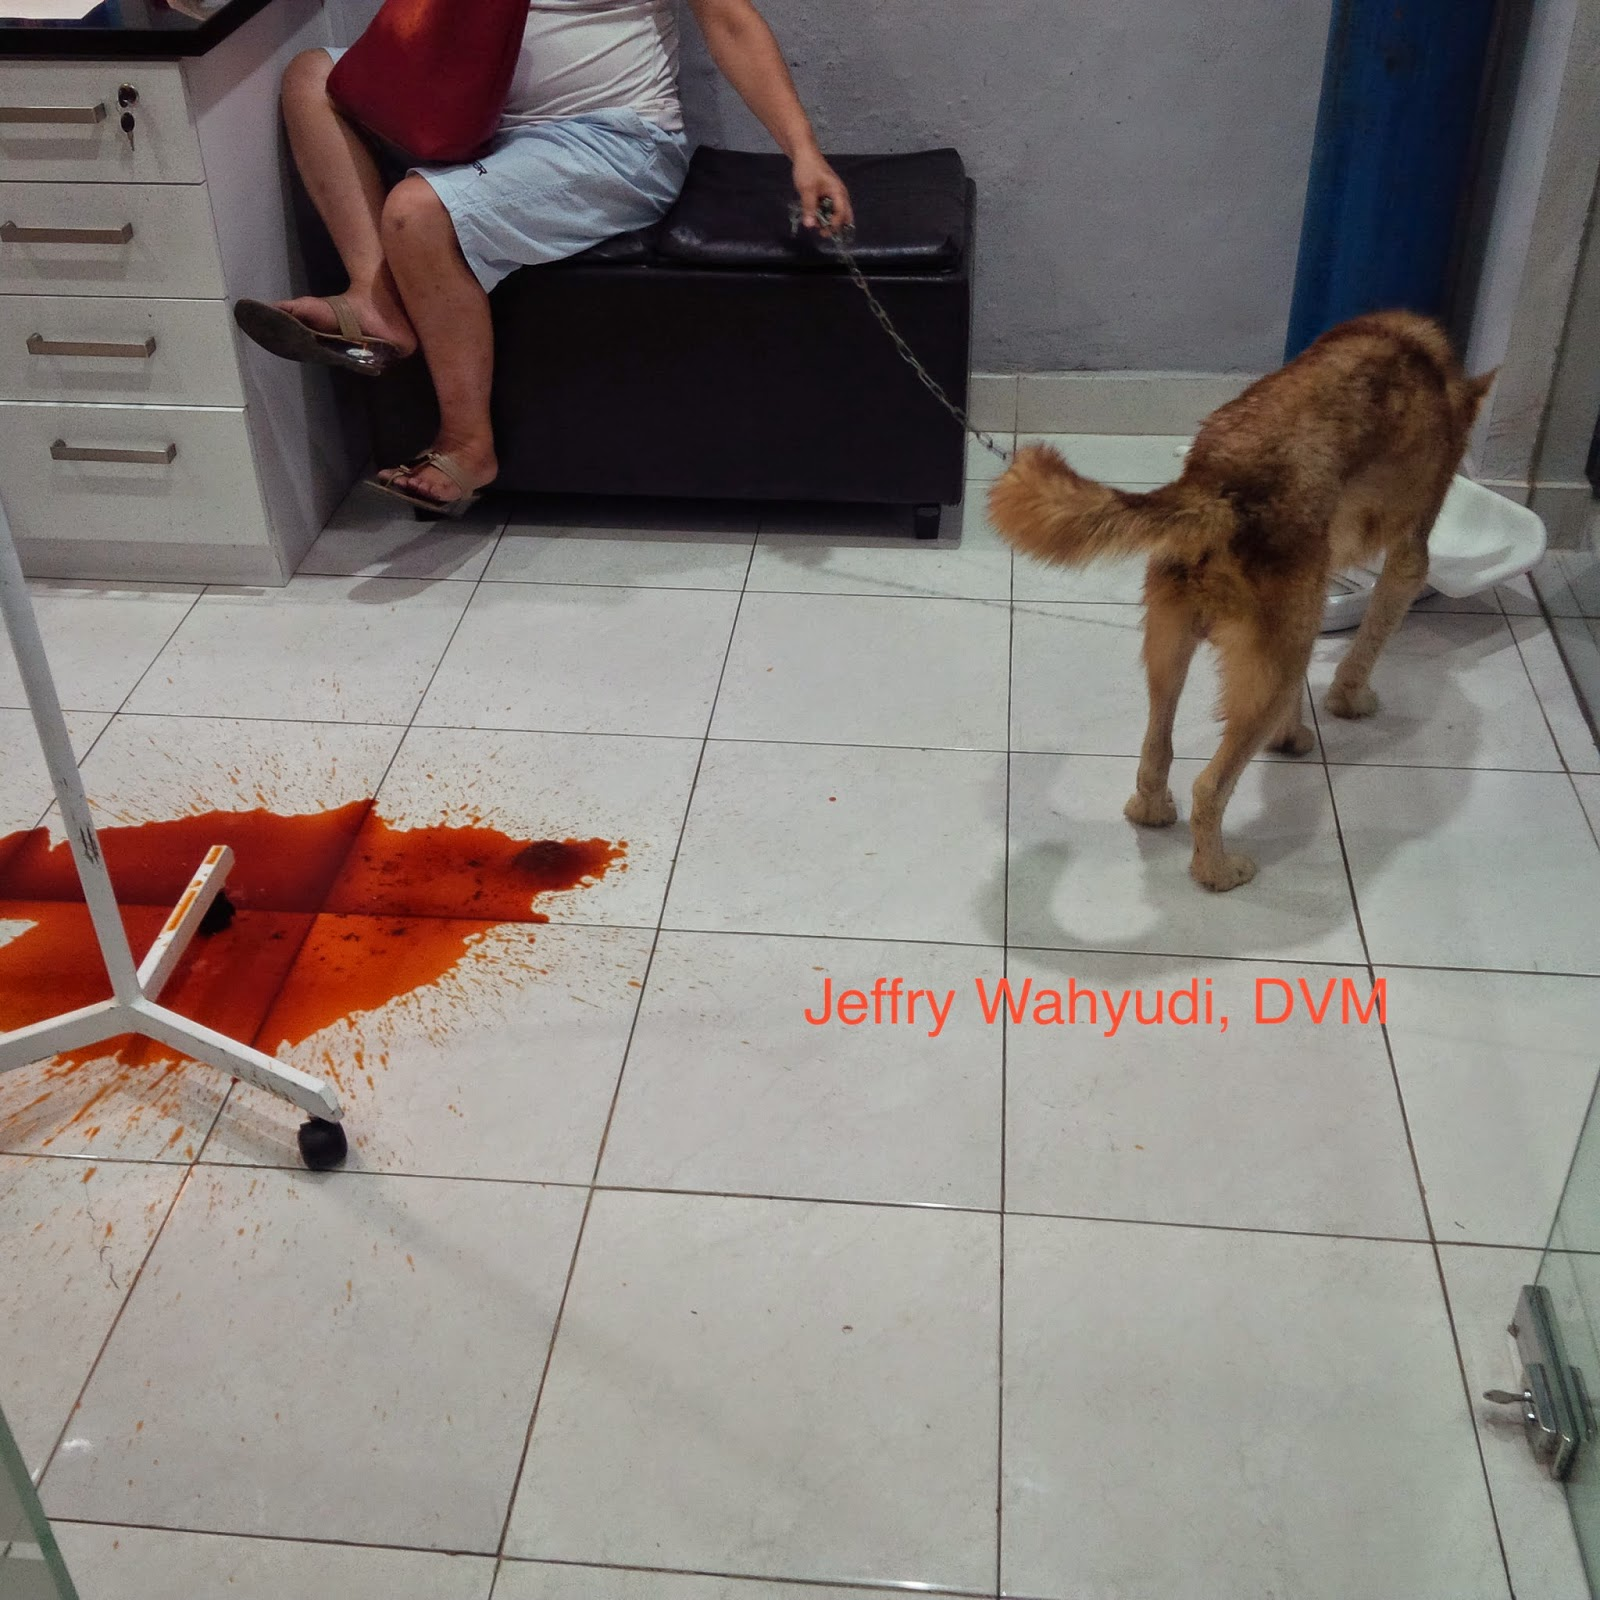 Canine Blood In Stool Paws Claws Vet Clinic What Is